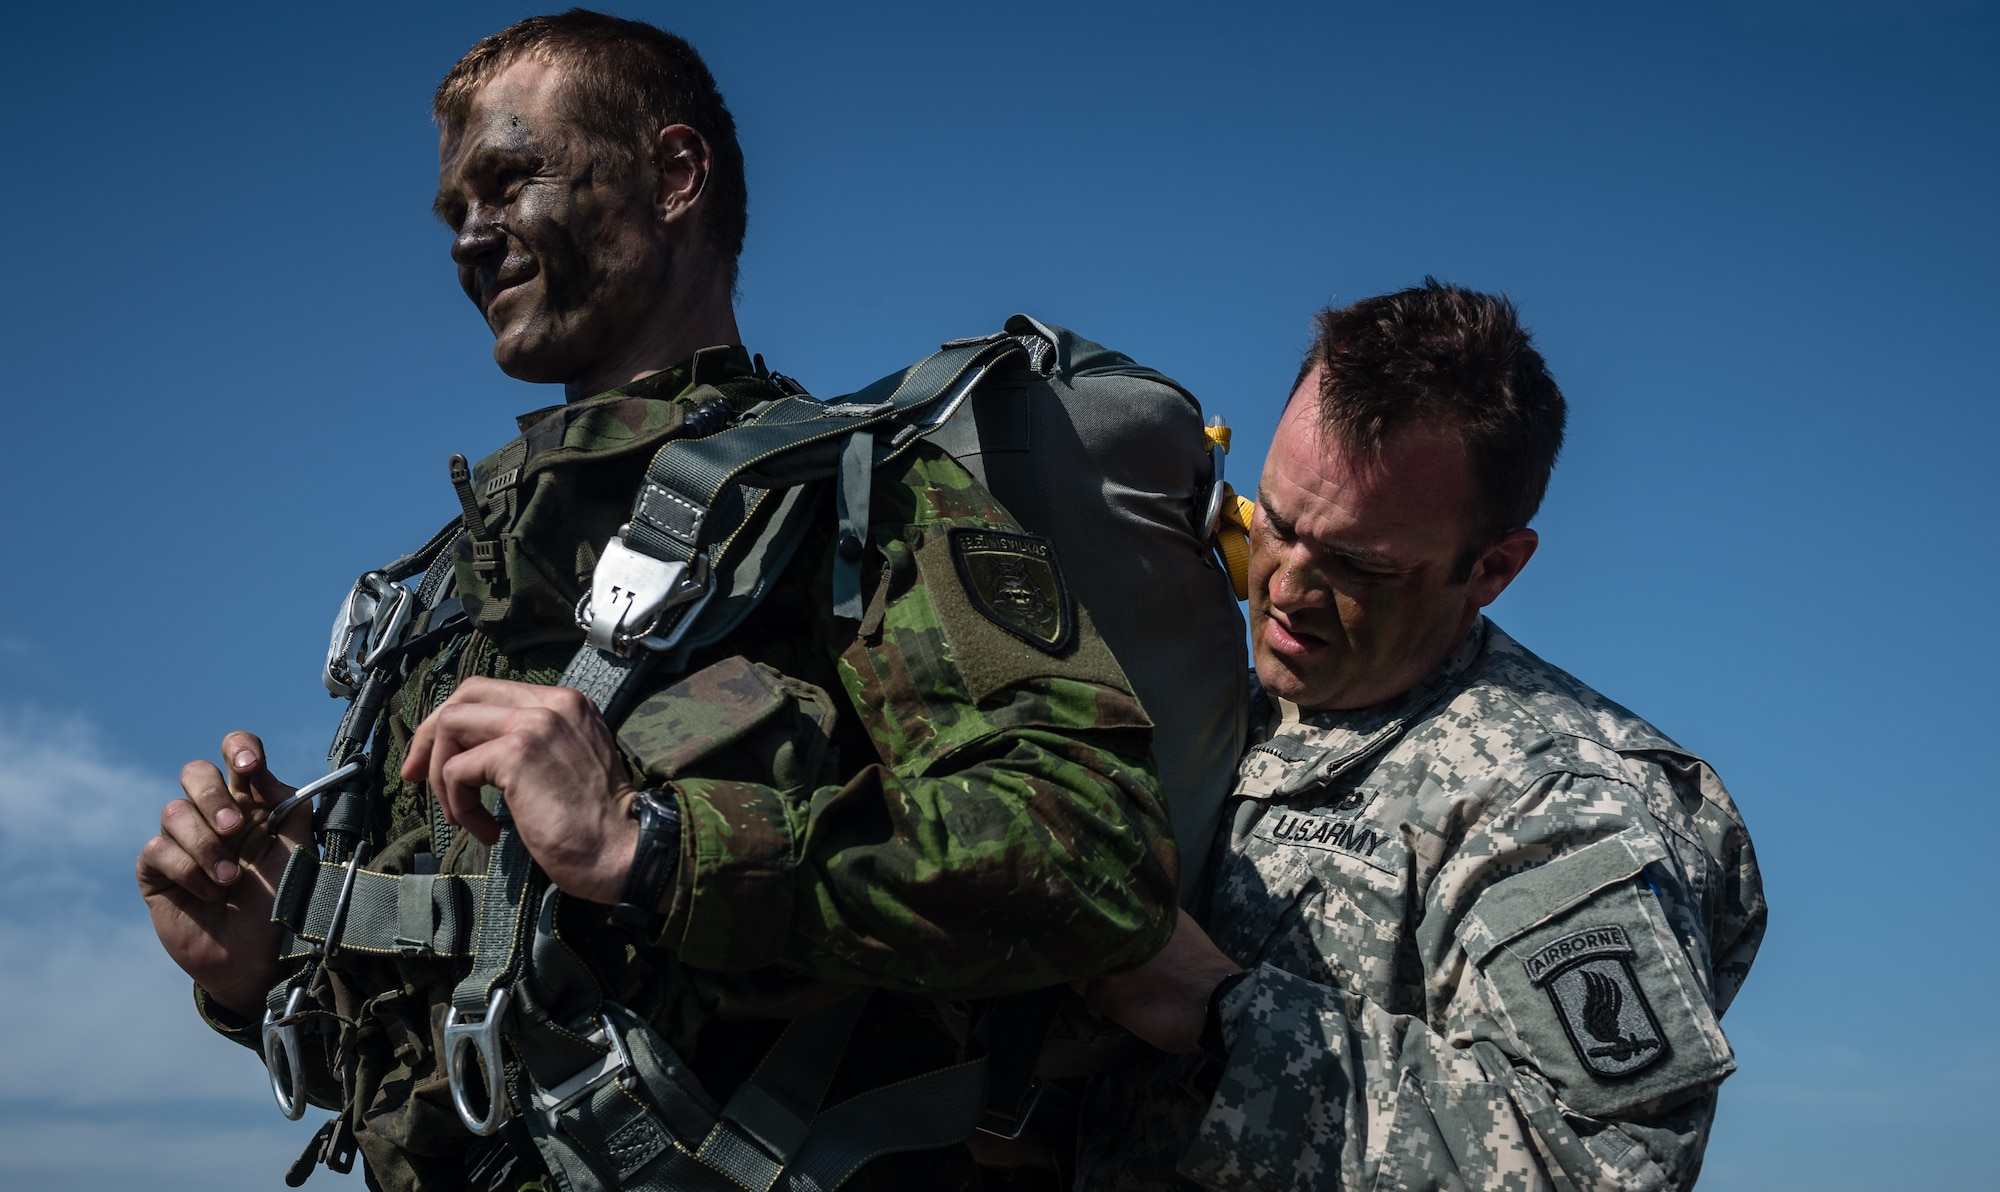 Army Sgt. Zachary McCarter, 1st Battalion 503rd Airborne Infantry Regiment forward observer, helps Lithuanian Land Forces Crpl. Ramūnas Zimblys prepare his parachute at Šiauliai International Airport, Lithuania, May 17, 2014. Pilots and loadmasters from the 37th AS, alongside an 86th Aircraft Maintenance flying crew chief spent four days across three Baltic countries assisting in personnel drops of allied partners and American service members. (U.S. Air Force photo/Airman 1st Class Jordan Castelan)